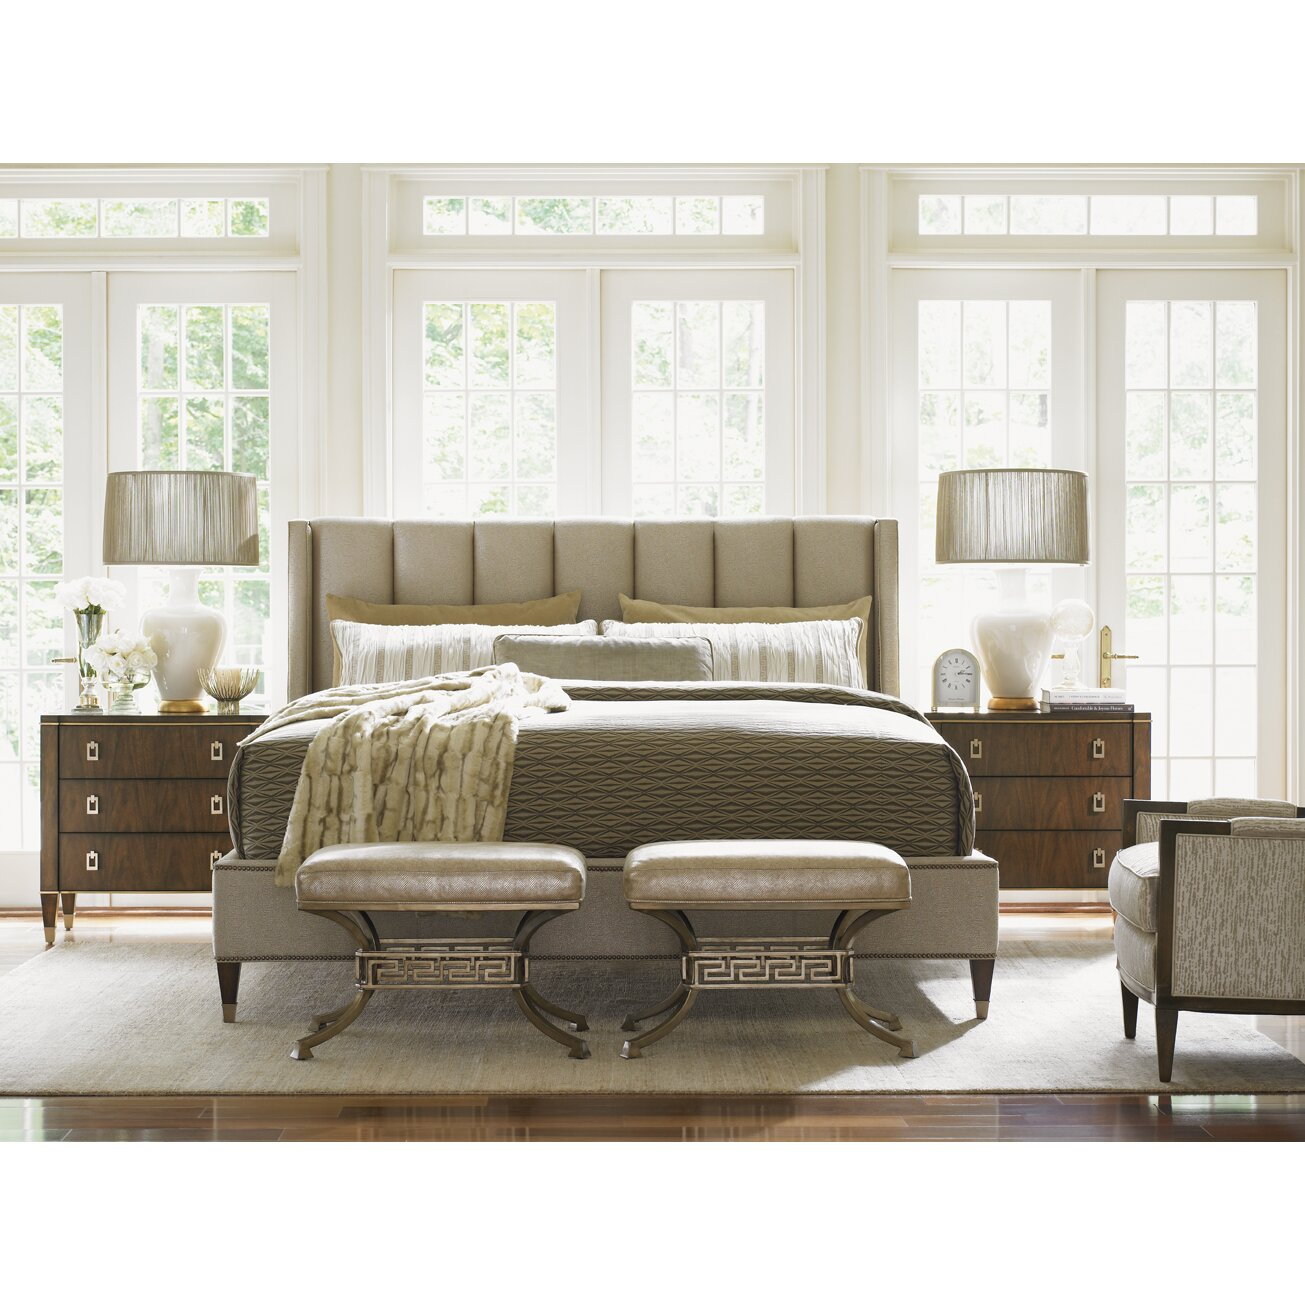 Bedroom Furniture: Lexington Tower Place Platform Customizable Bedroom Set